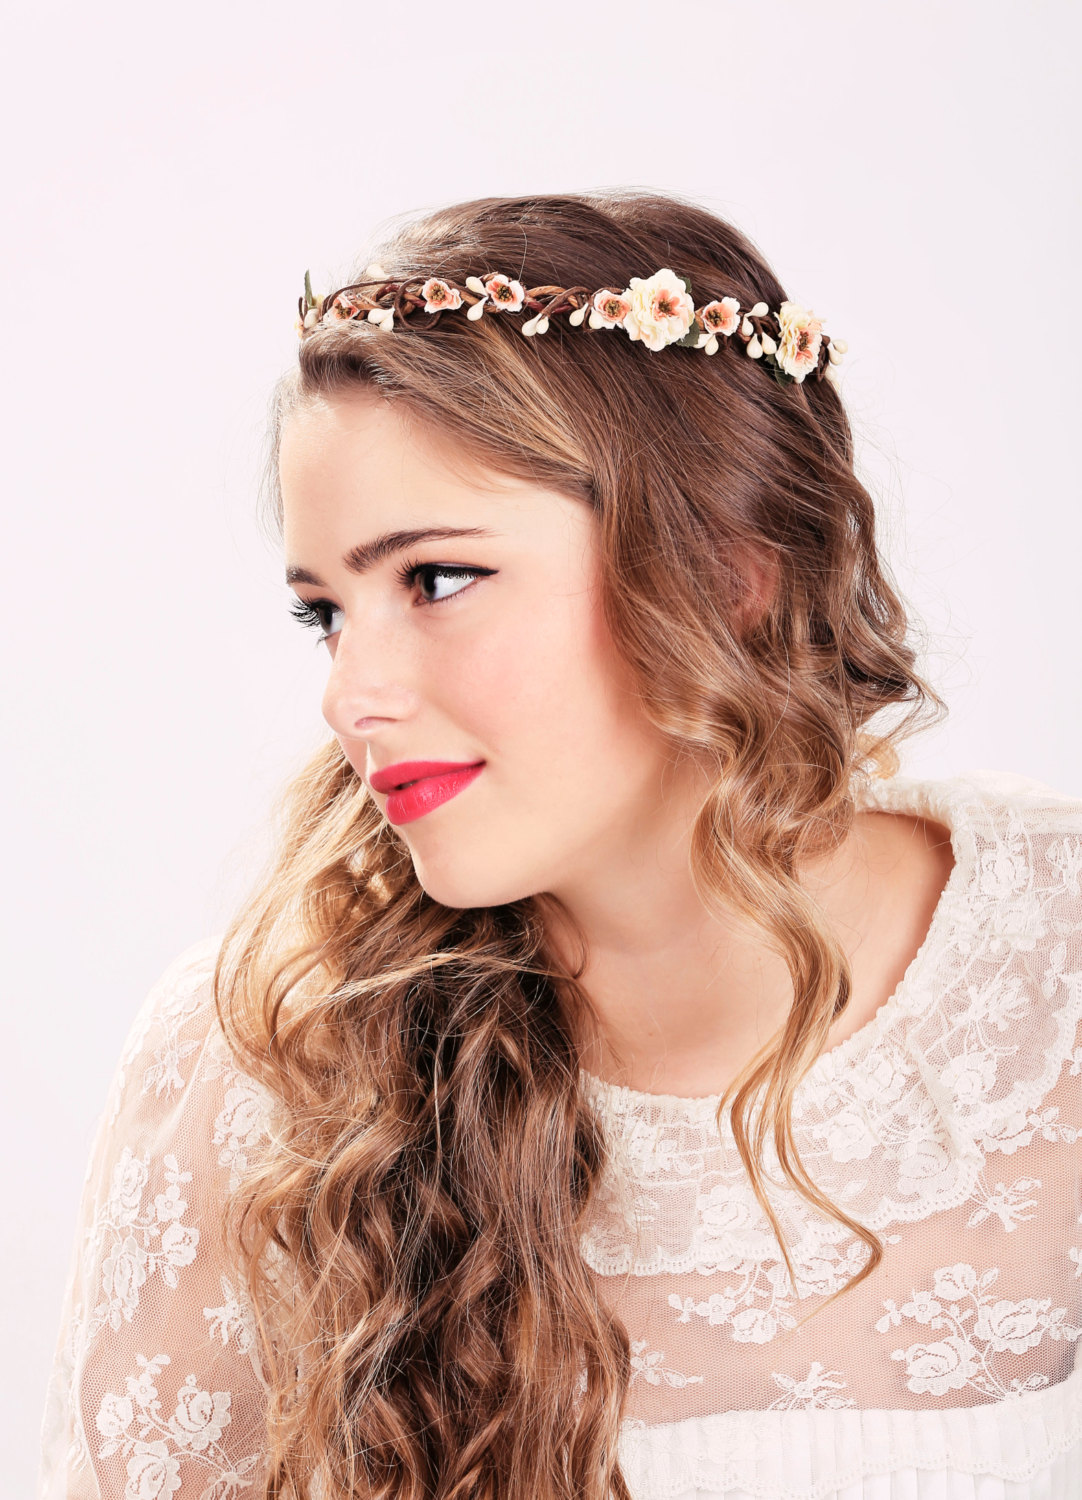 Peach Blossom Flower Crown a25dbc156dc